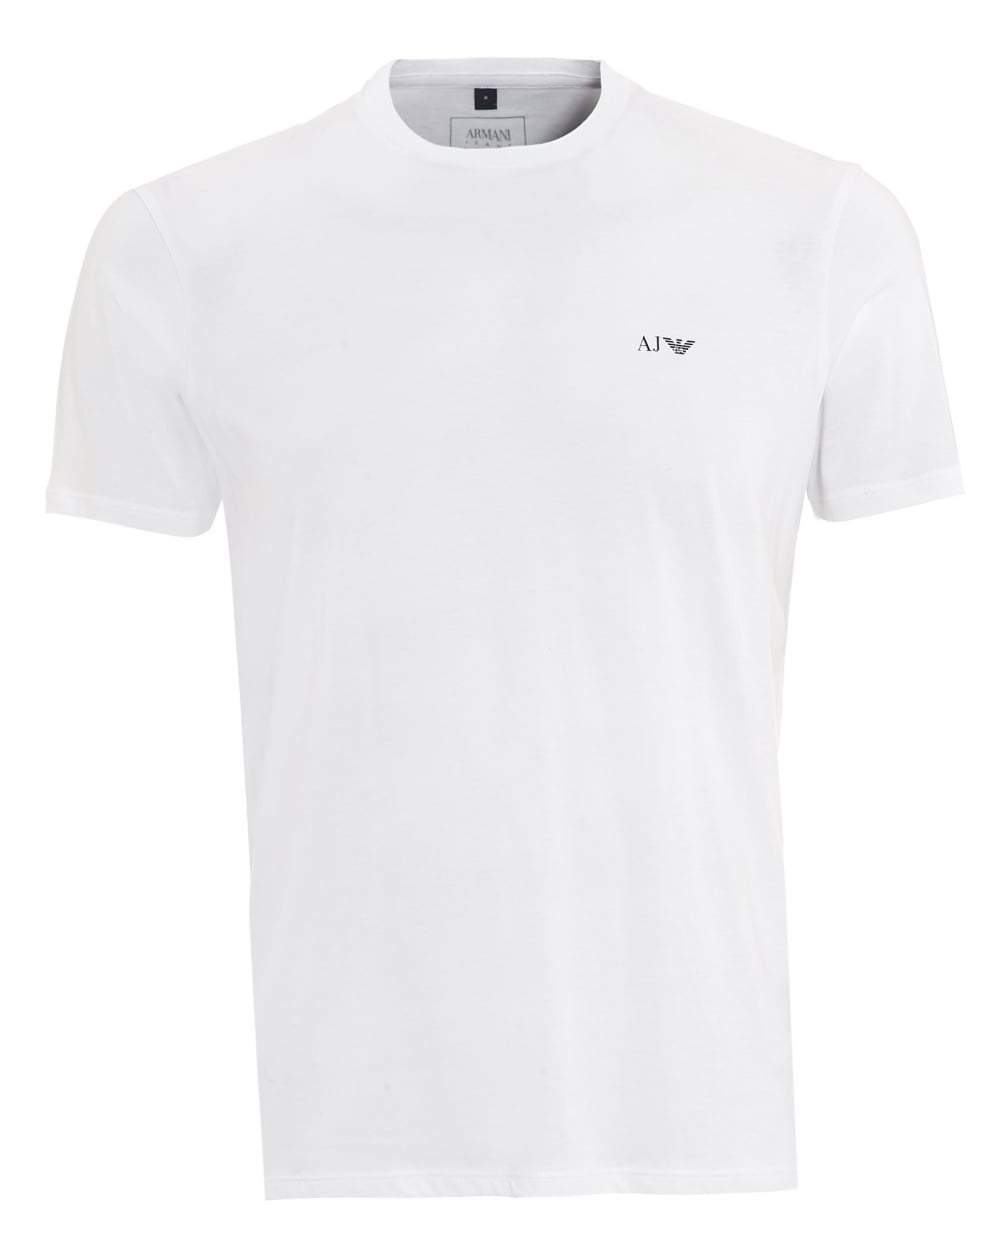 Armani Jeans - Mens Short Sleeve Crewneck T Shirt - White - Raw Apparel uk - l - Armani Jeans Mens Clothing and apparel - New 2018 Fashion Trends and Styles,  Free Shipping, #uk, Mens clothing & apparel, T Shirts , Summer sale, #Streetfashion